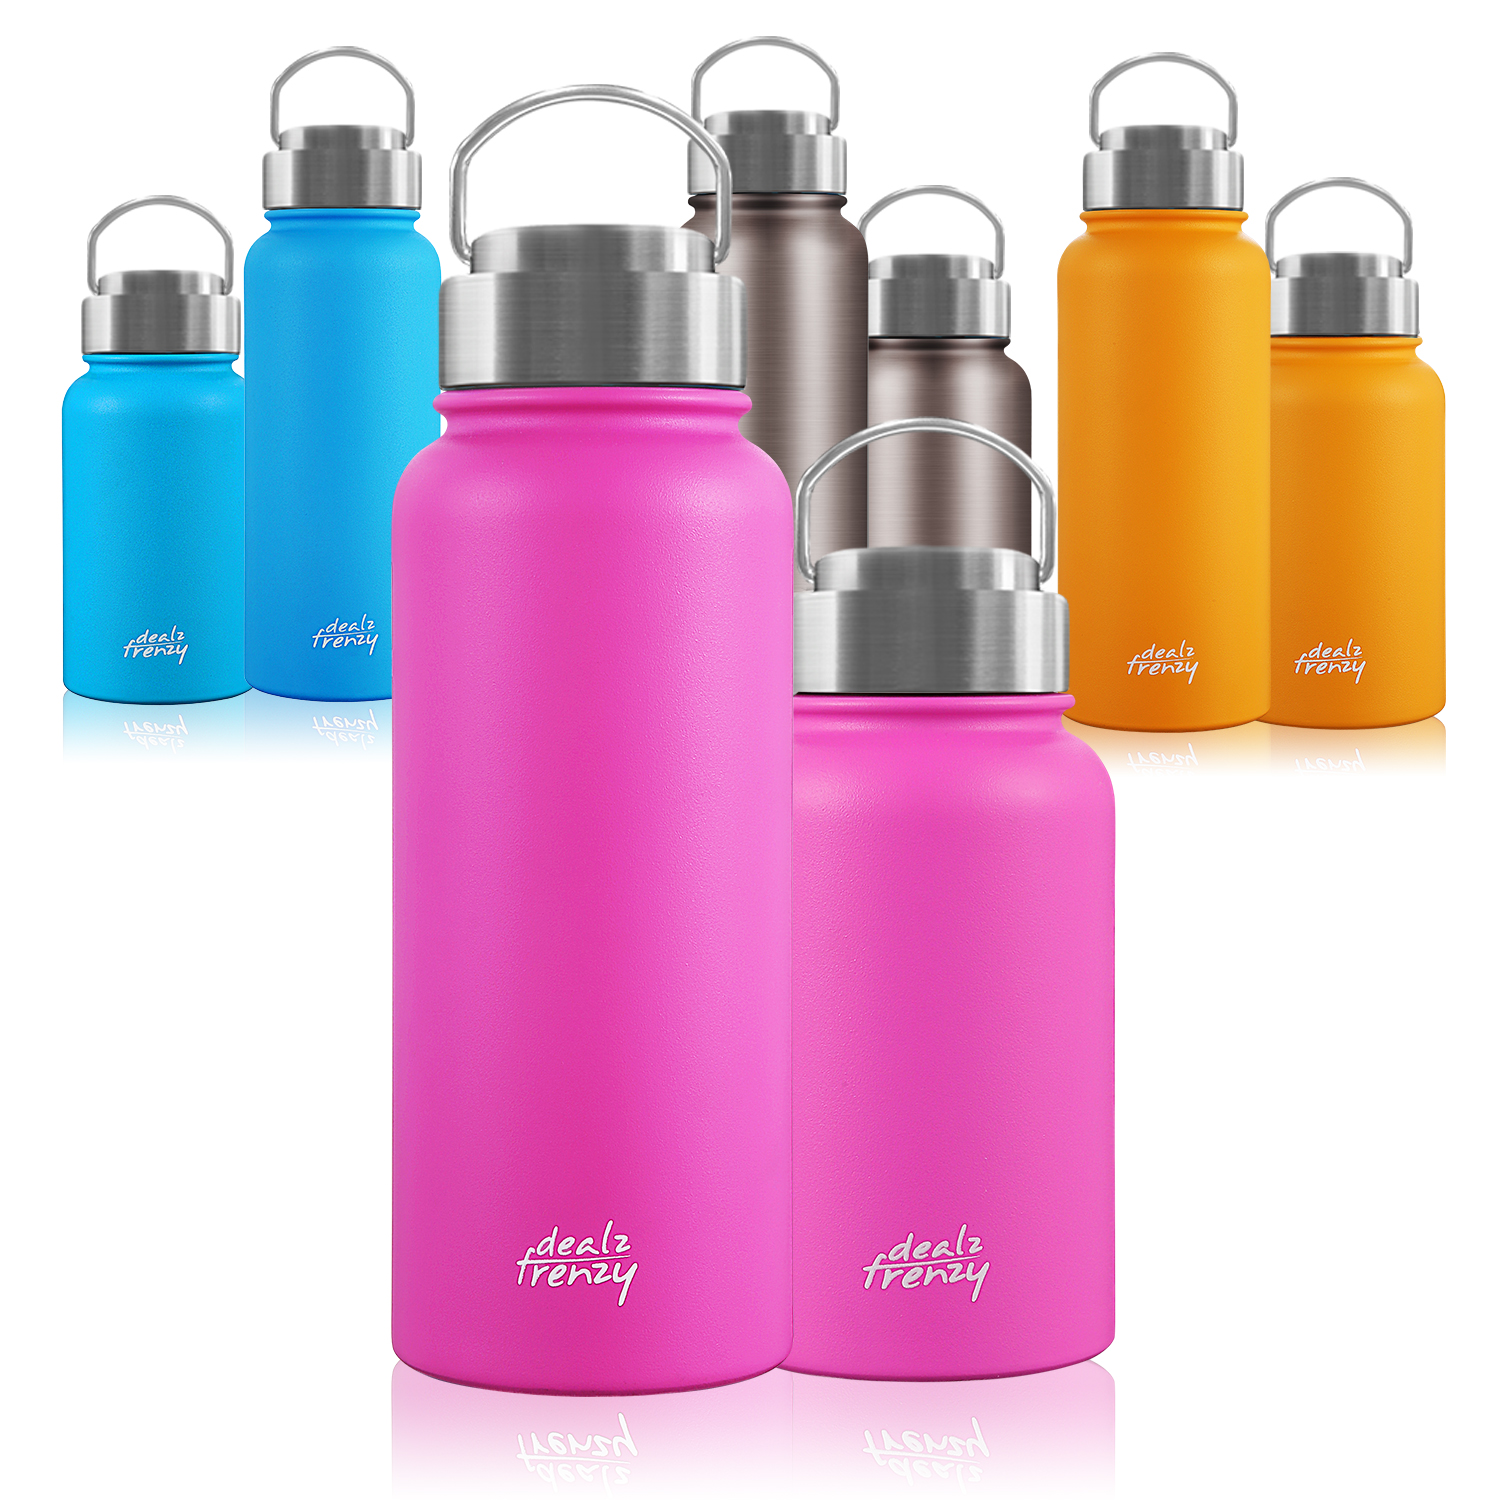 stainless steel water bottle, SAVE $1.98 COUPON, END TONIGHT